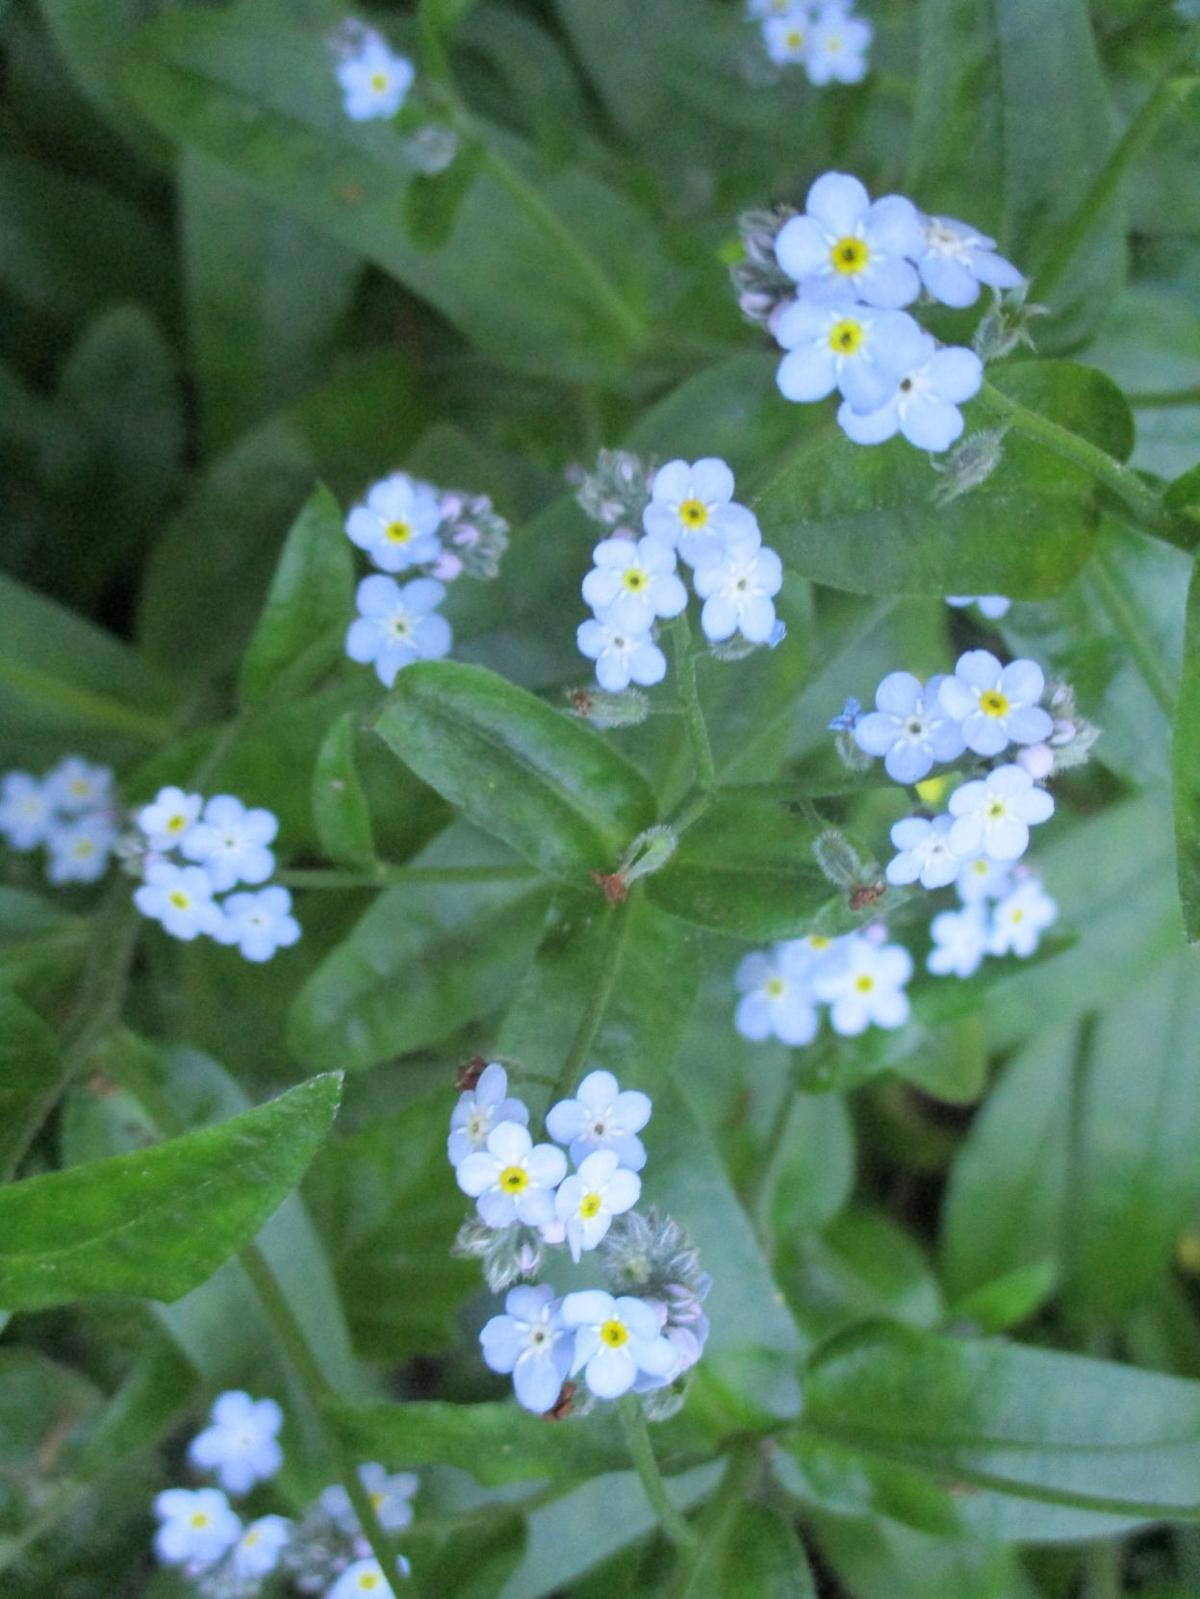 Forget-me-not can reseed year after year.